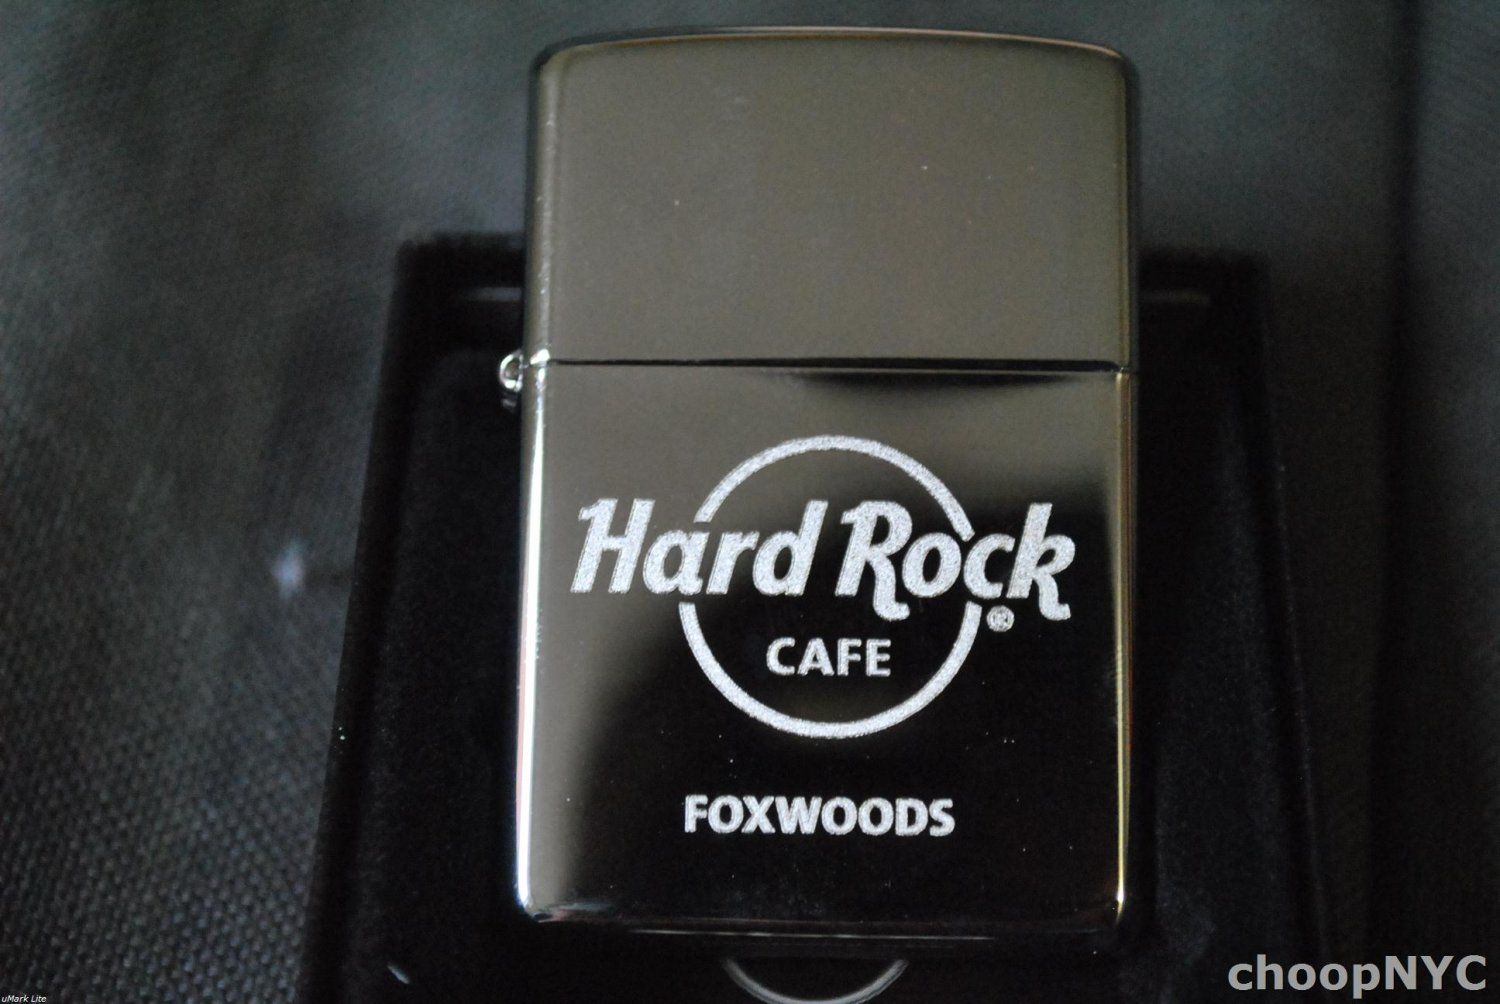 Hard Rock Cafe Foxwoods Zippo Wind-proof Lighter